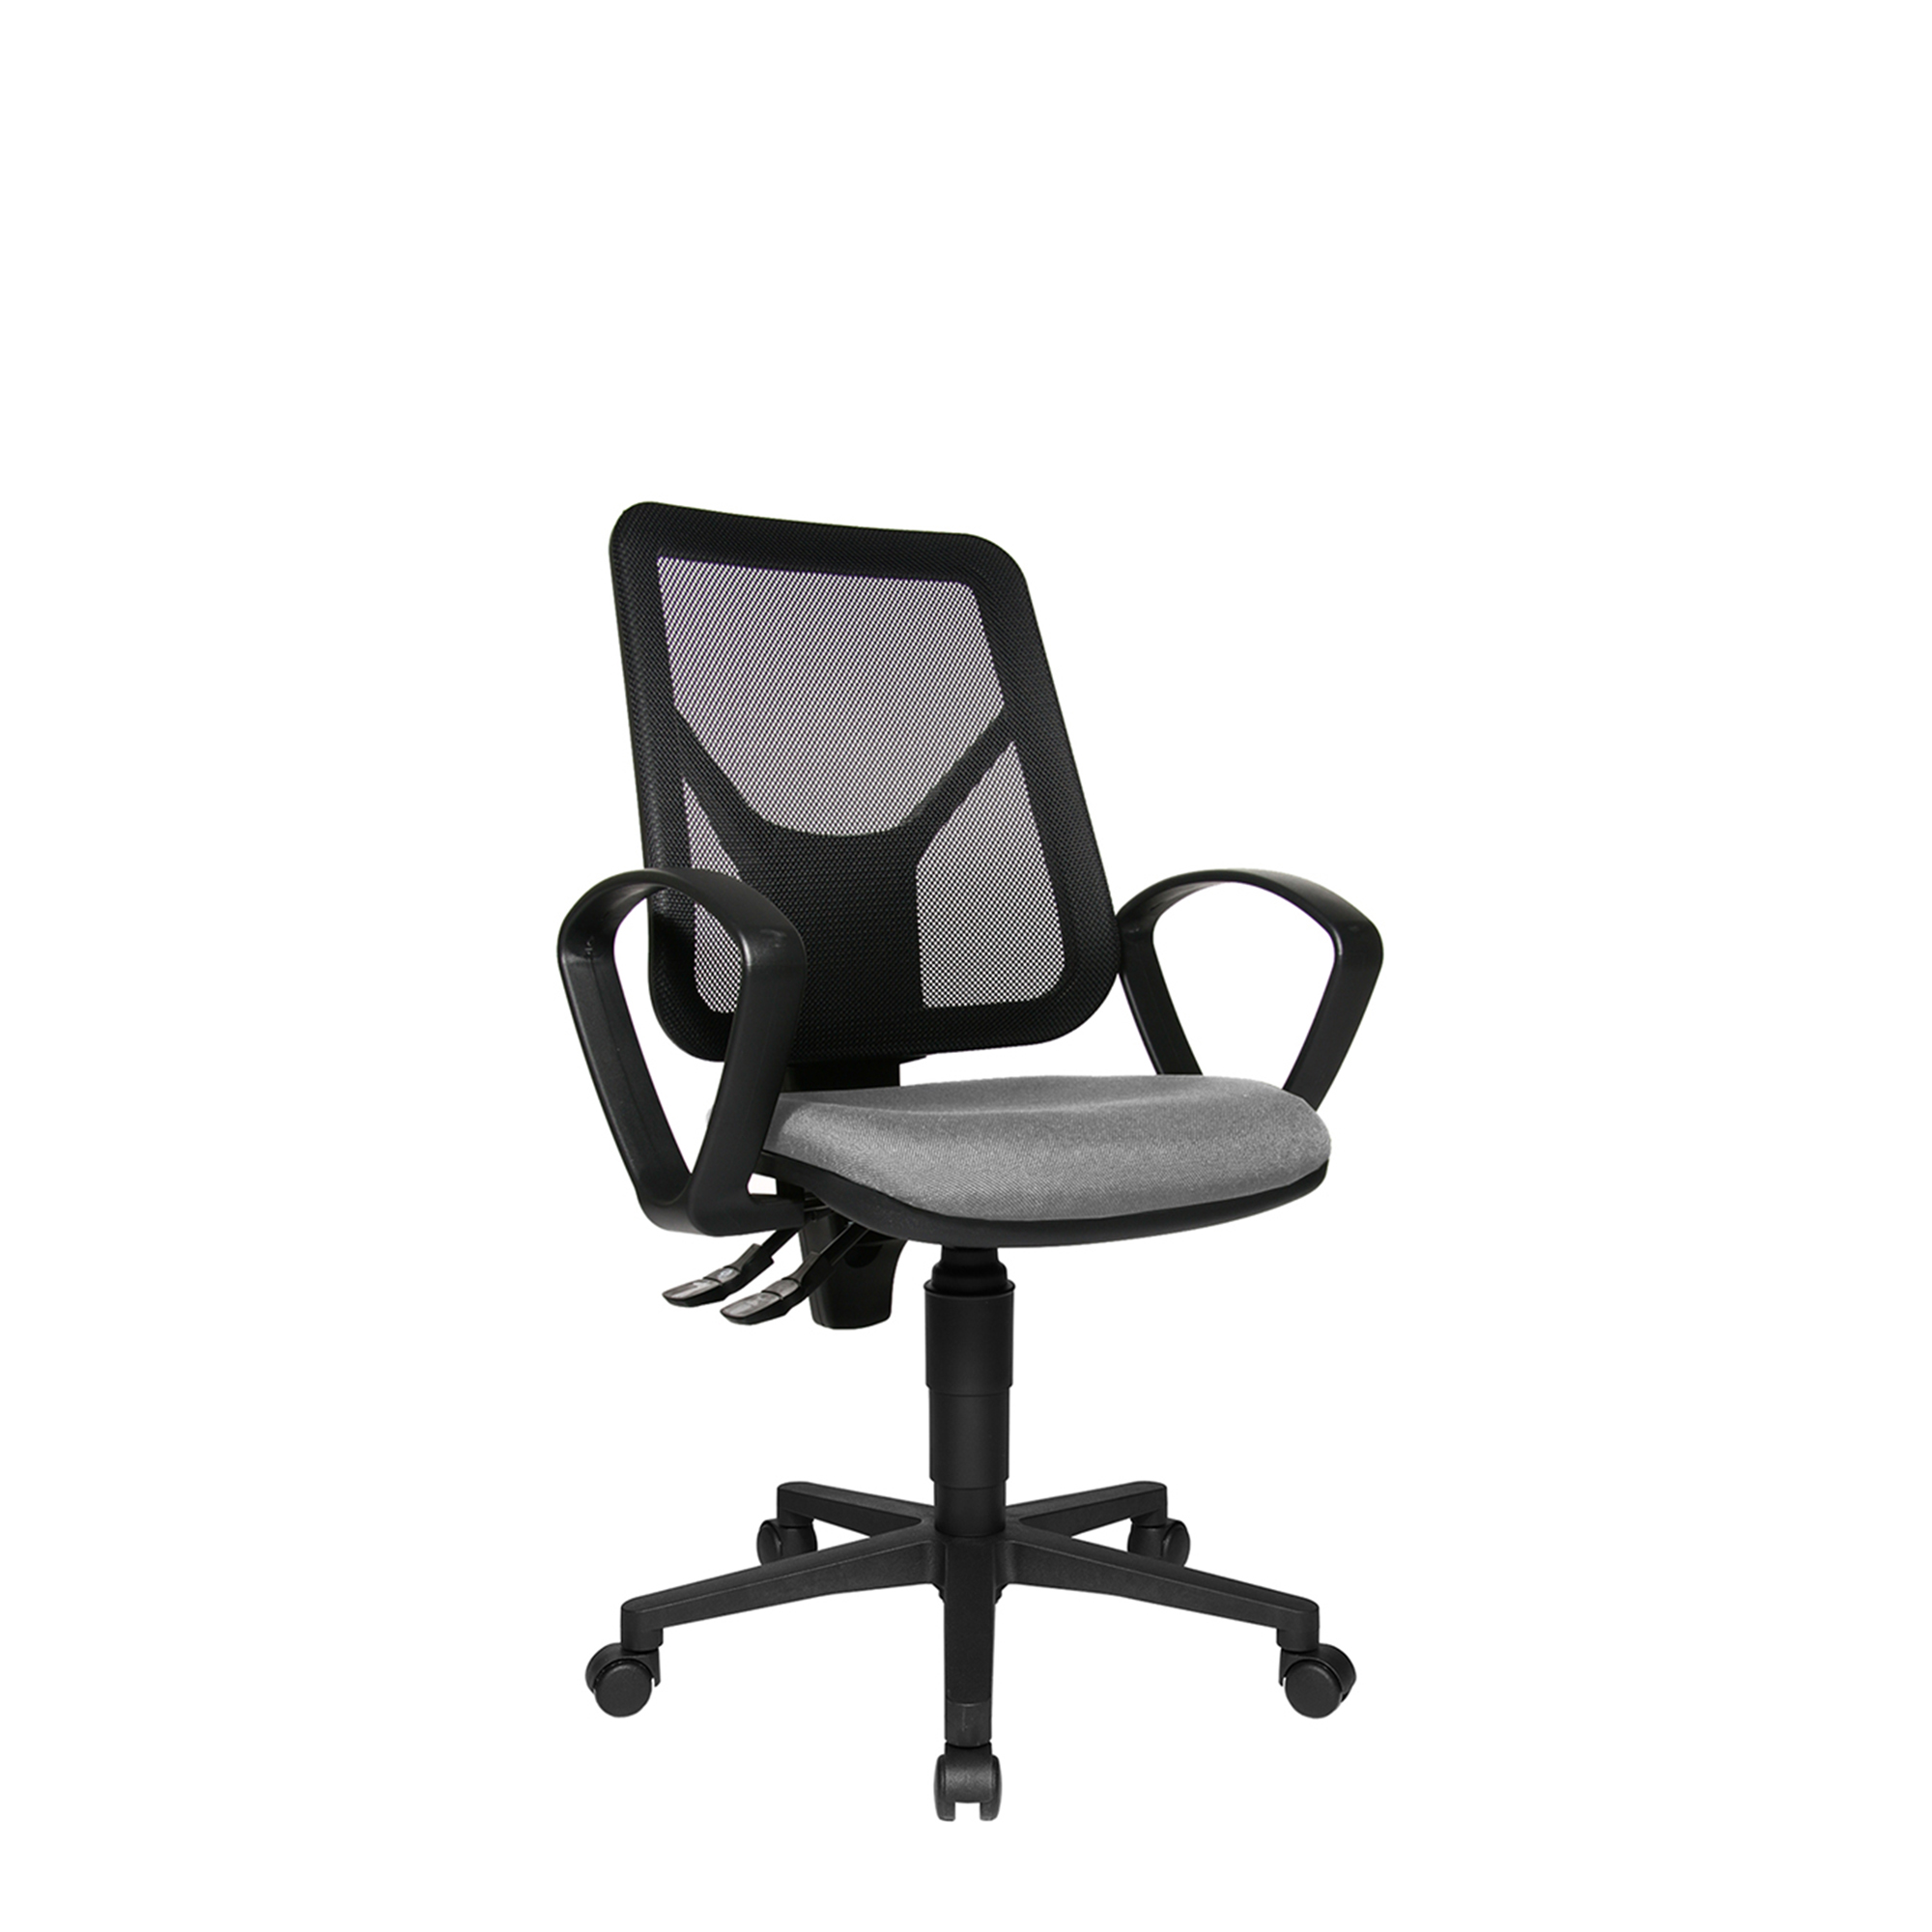 Ergo Swivel Armchair With Mesh Backrest Office Chairs Fishpools